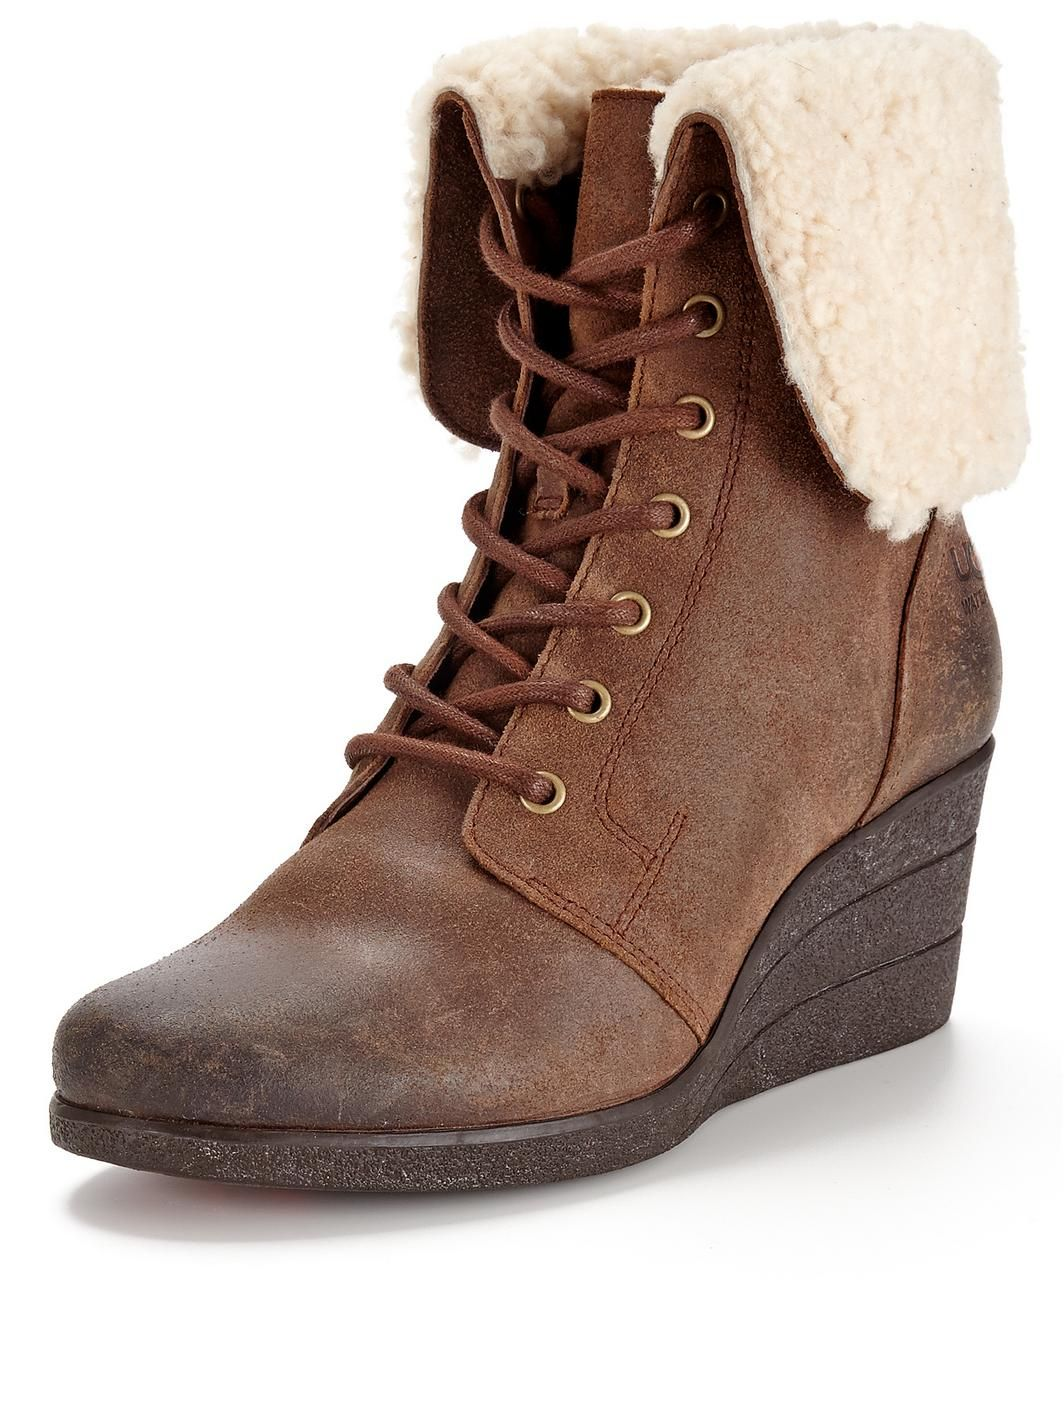 921c4e8431b Womens, Mens and Kids Fashion, Furniture, Electricals & More | Shoes ...